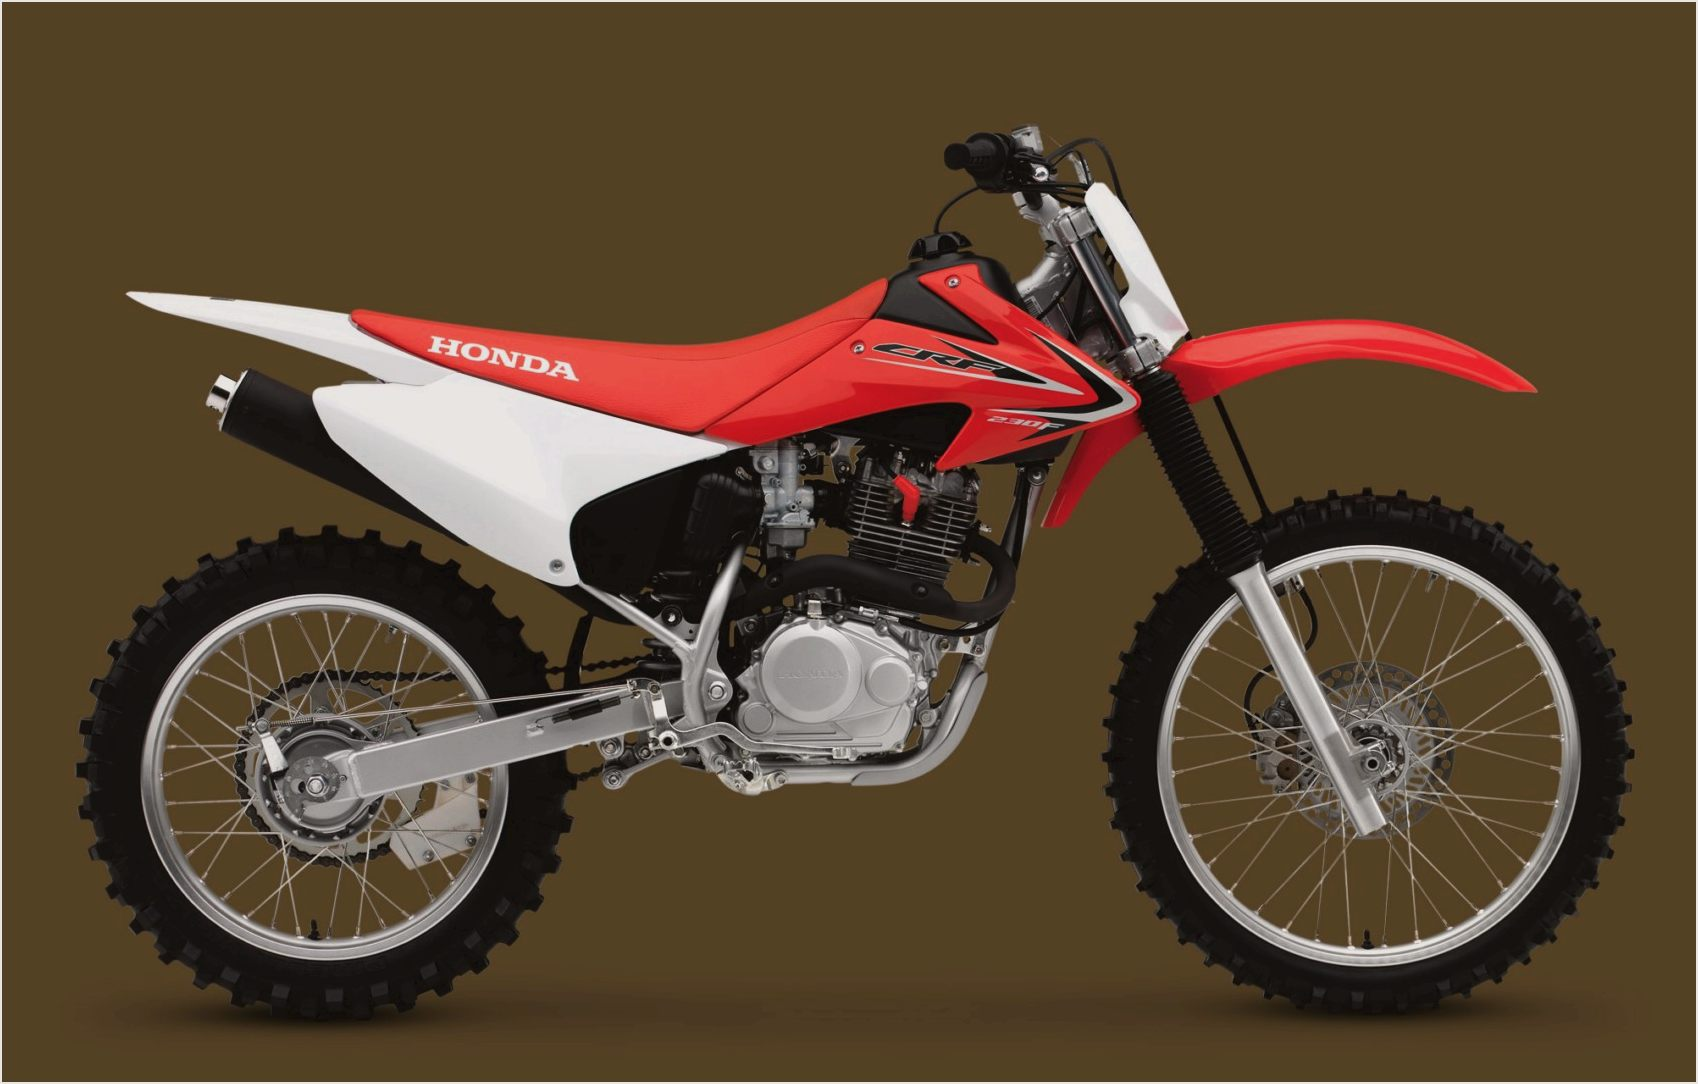 Crf 450 Wiring Diagram Library Crf450r 150 Online Schematics Rh Delvato Co